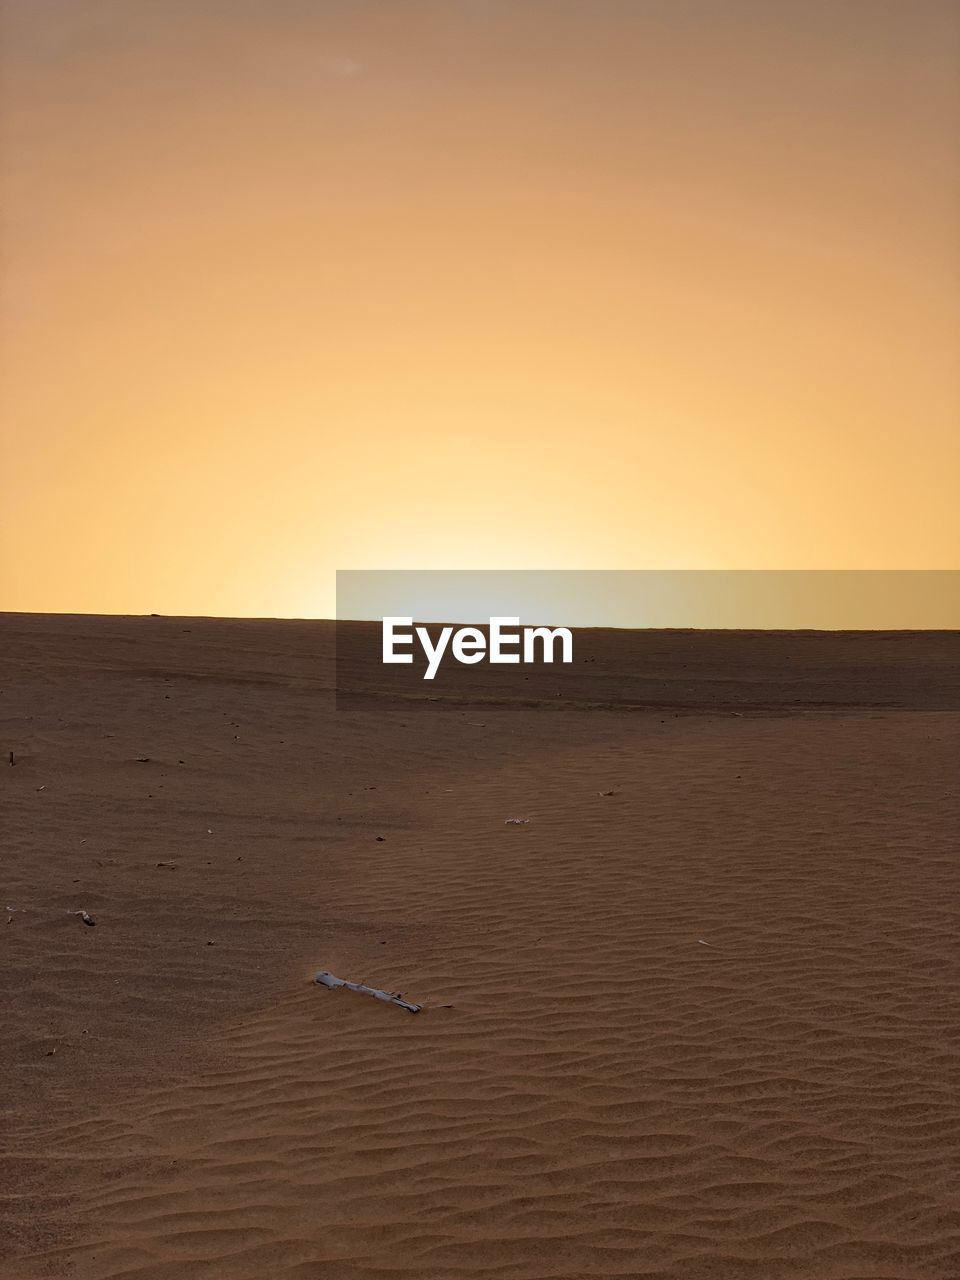 sky, scenics - nature, horizon, sunset, tranquility, beauty in nature, tranquil scene, no people, land, copy space, landscape, non-urban scene, clear sky, horizon over land, nature, environment, desert, remote, sea, arid climate, climate